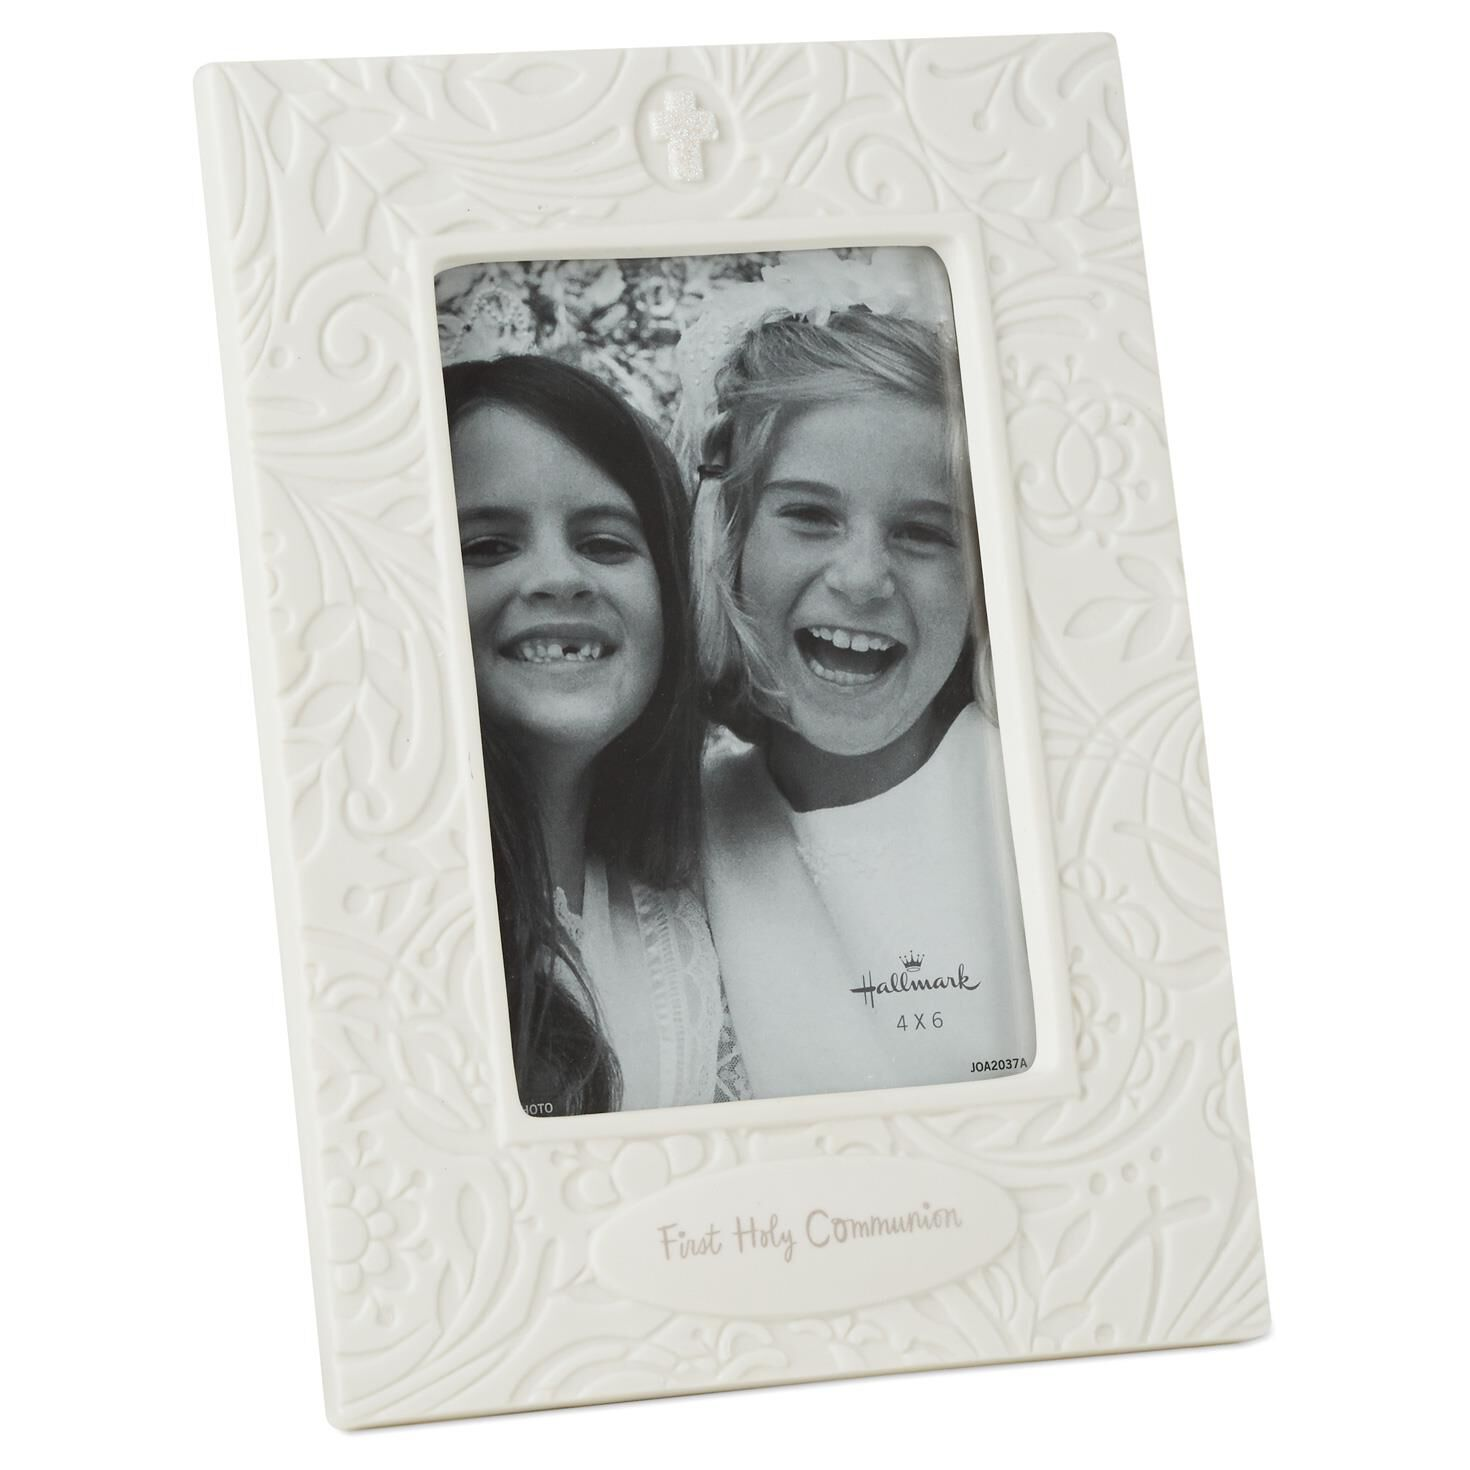 First Holy Communion Picture Frame 4x6 Figurines Hallmark